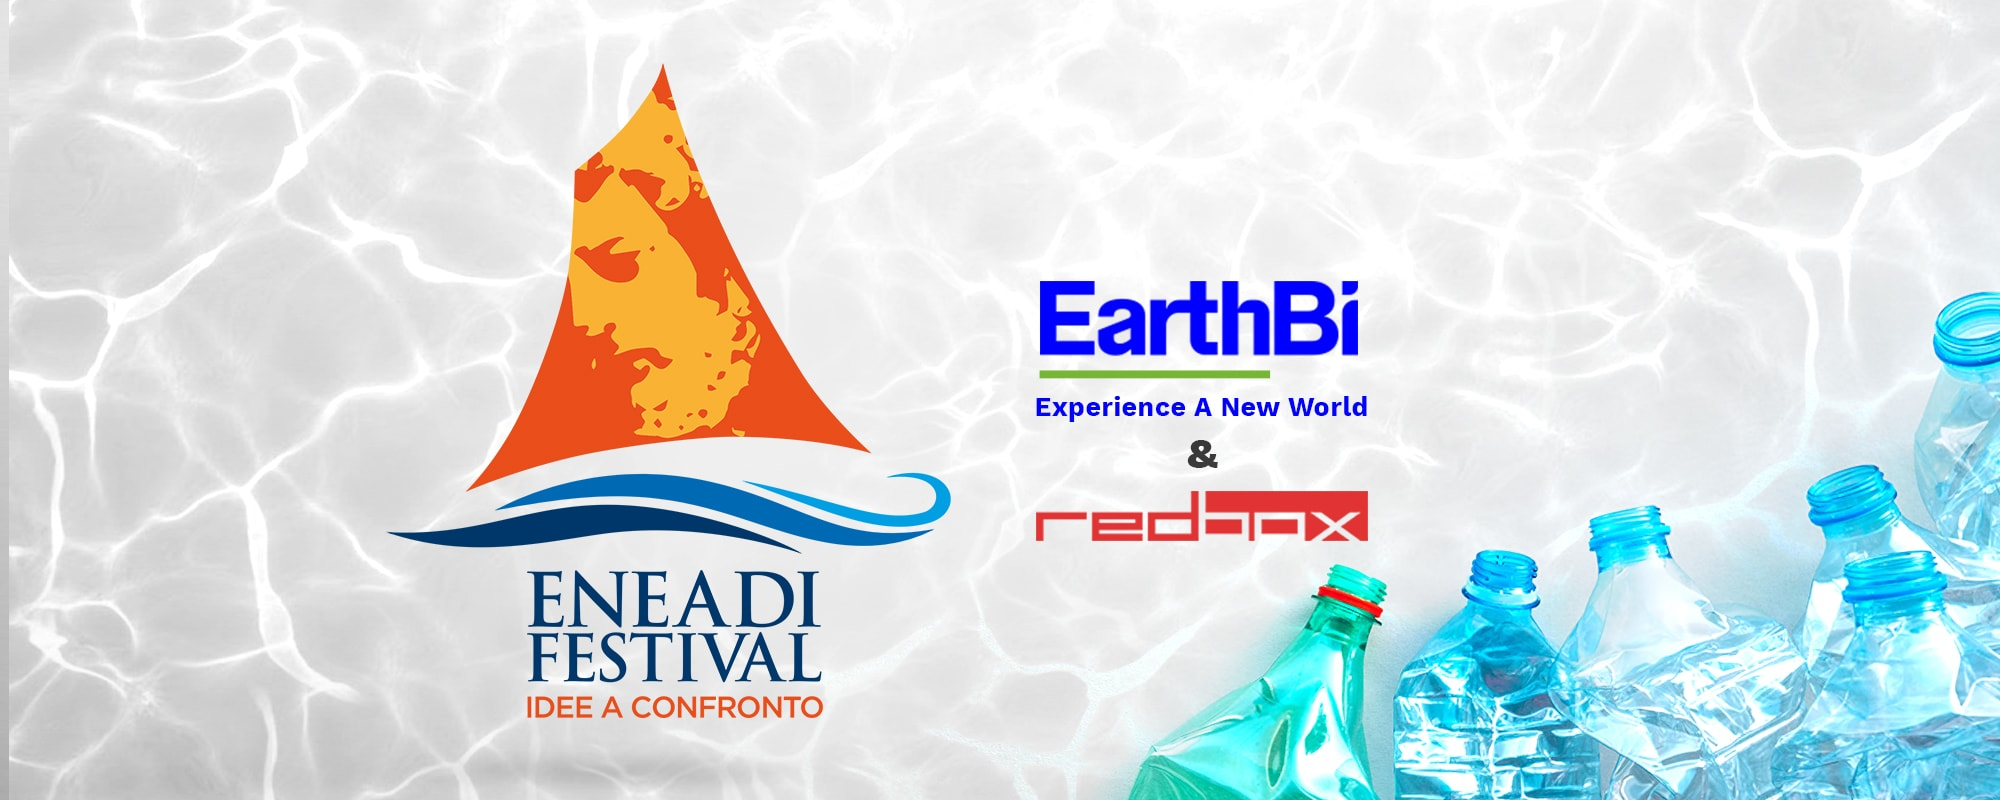 earthbi guest at eneadi festival